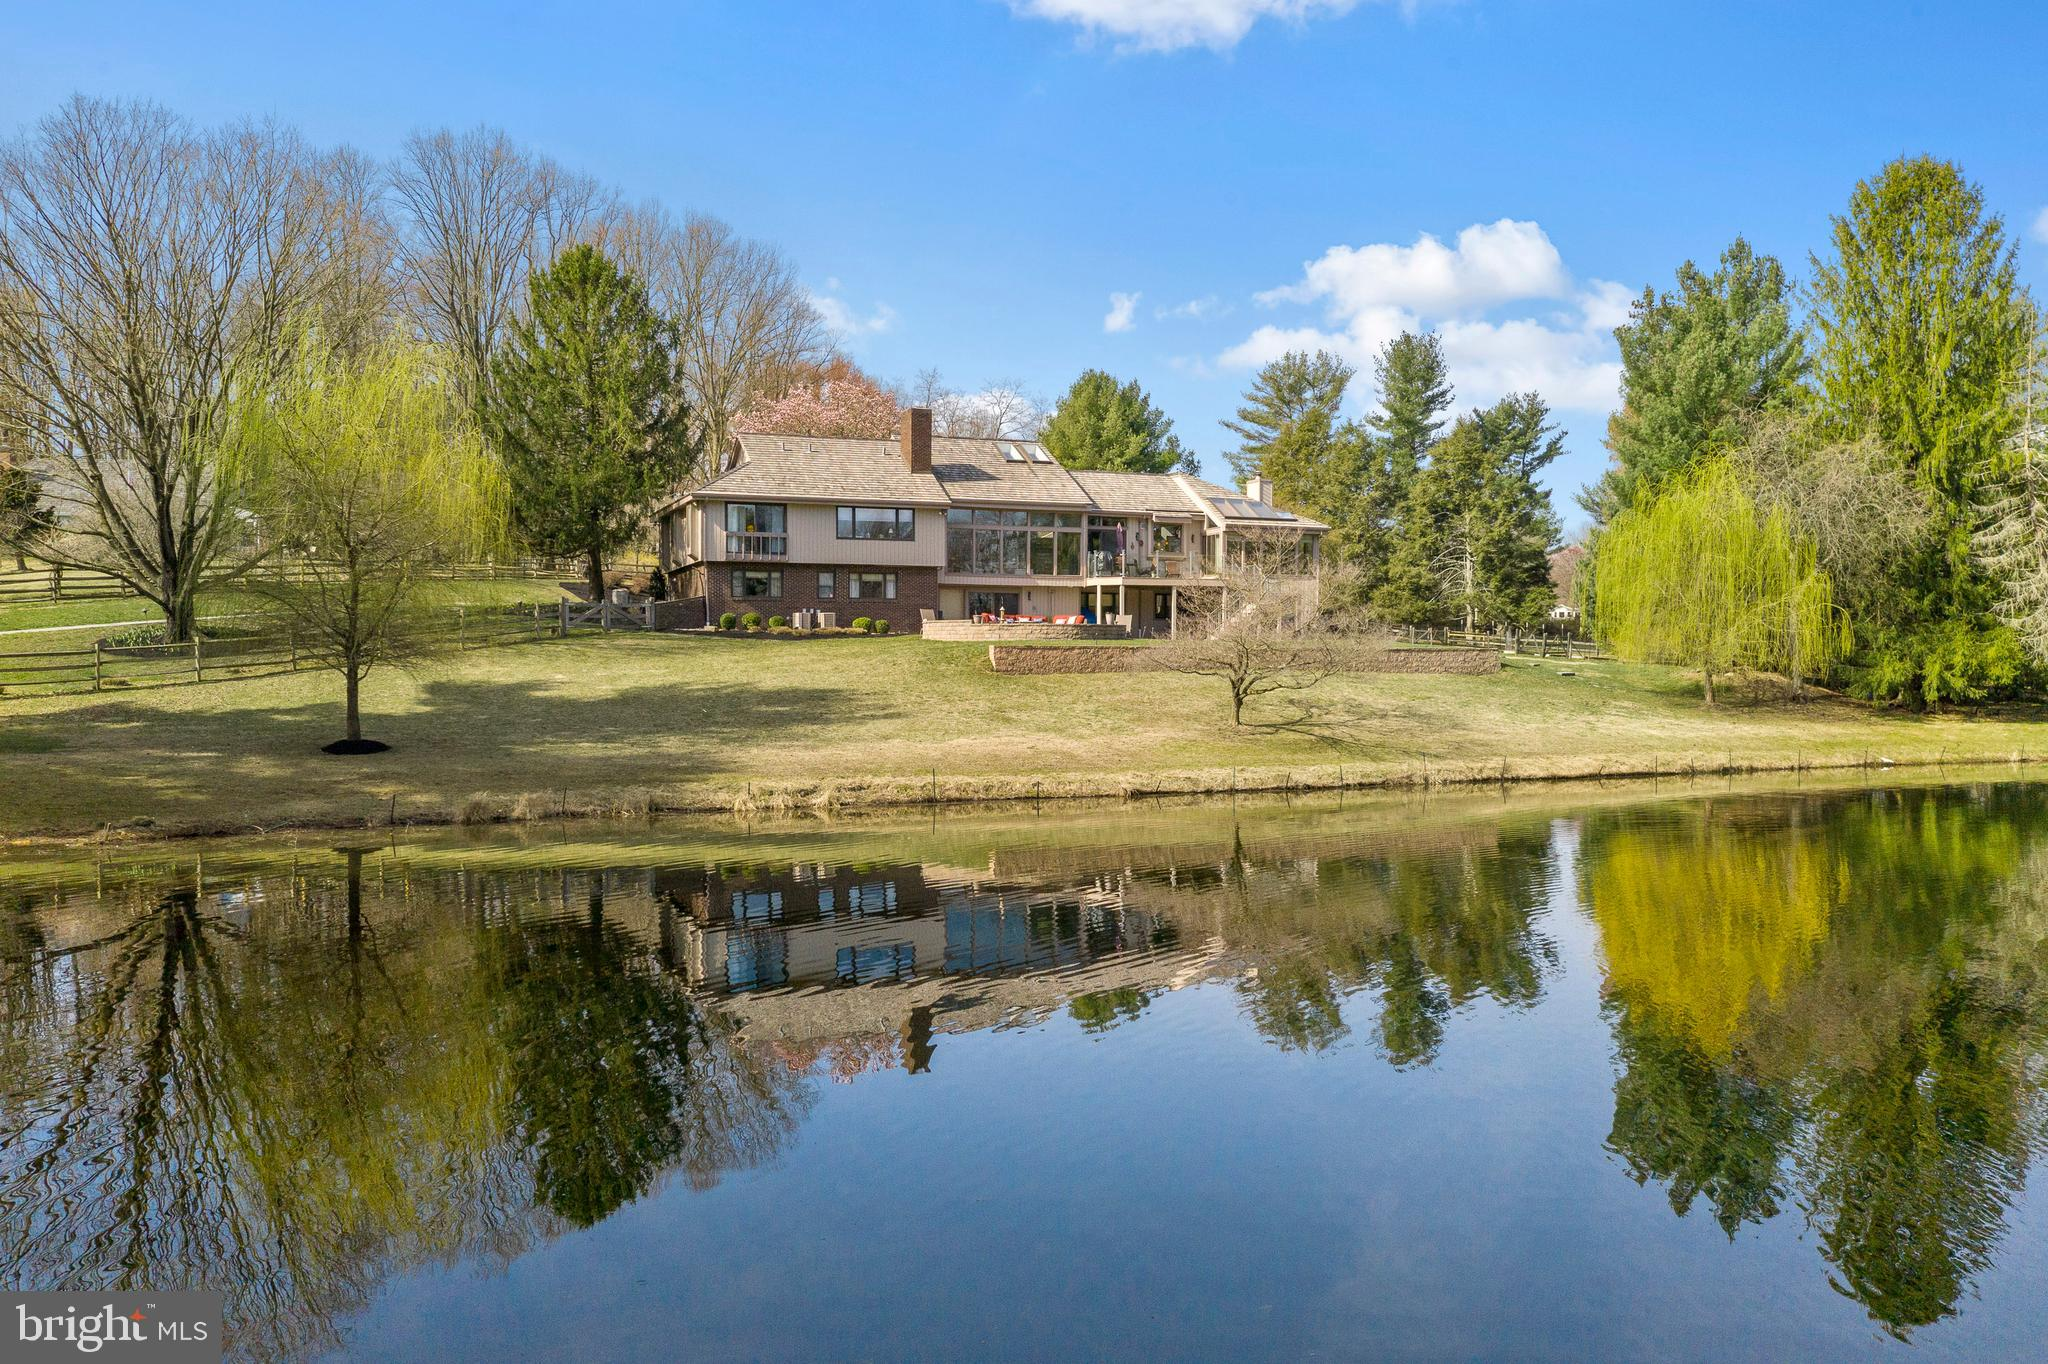 8 OAK TREE HOLLOW ROAD, WEST CHESTER, PA 19382